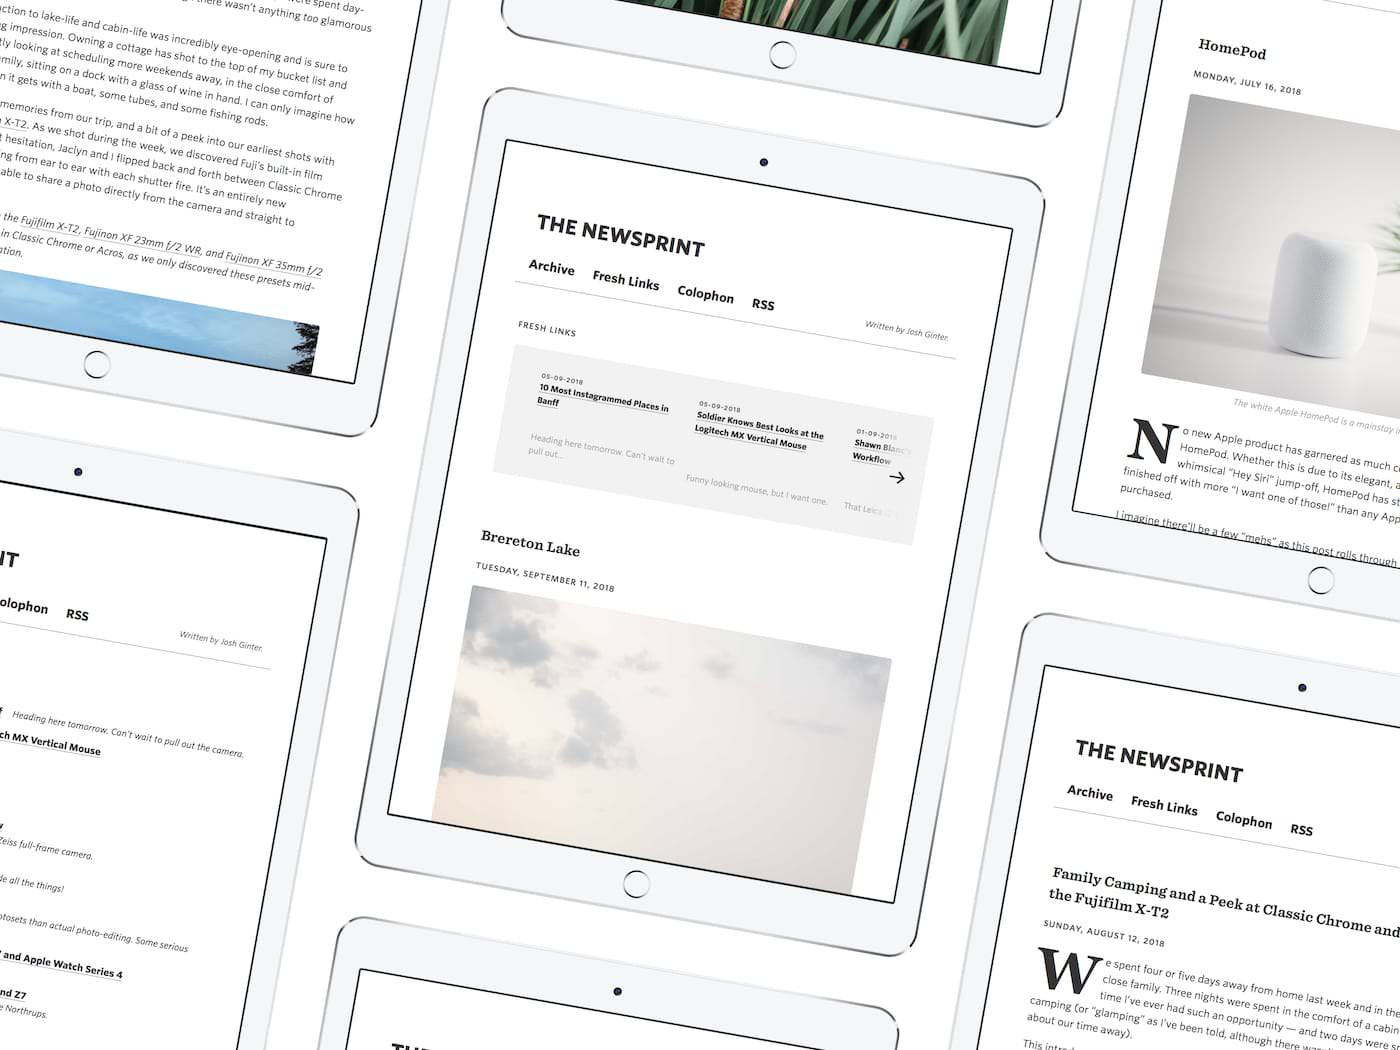 thenewsprint.co on ipads